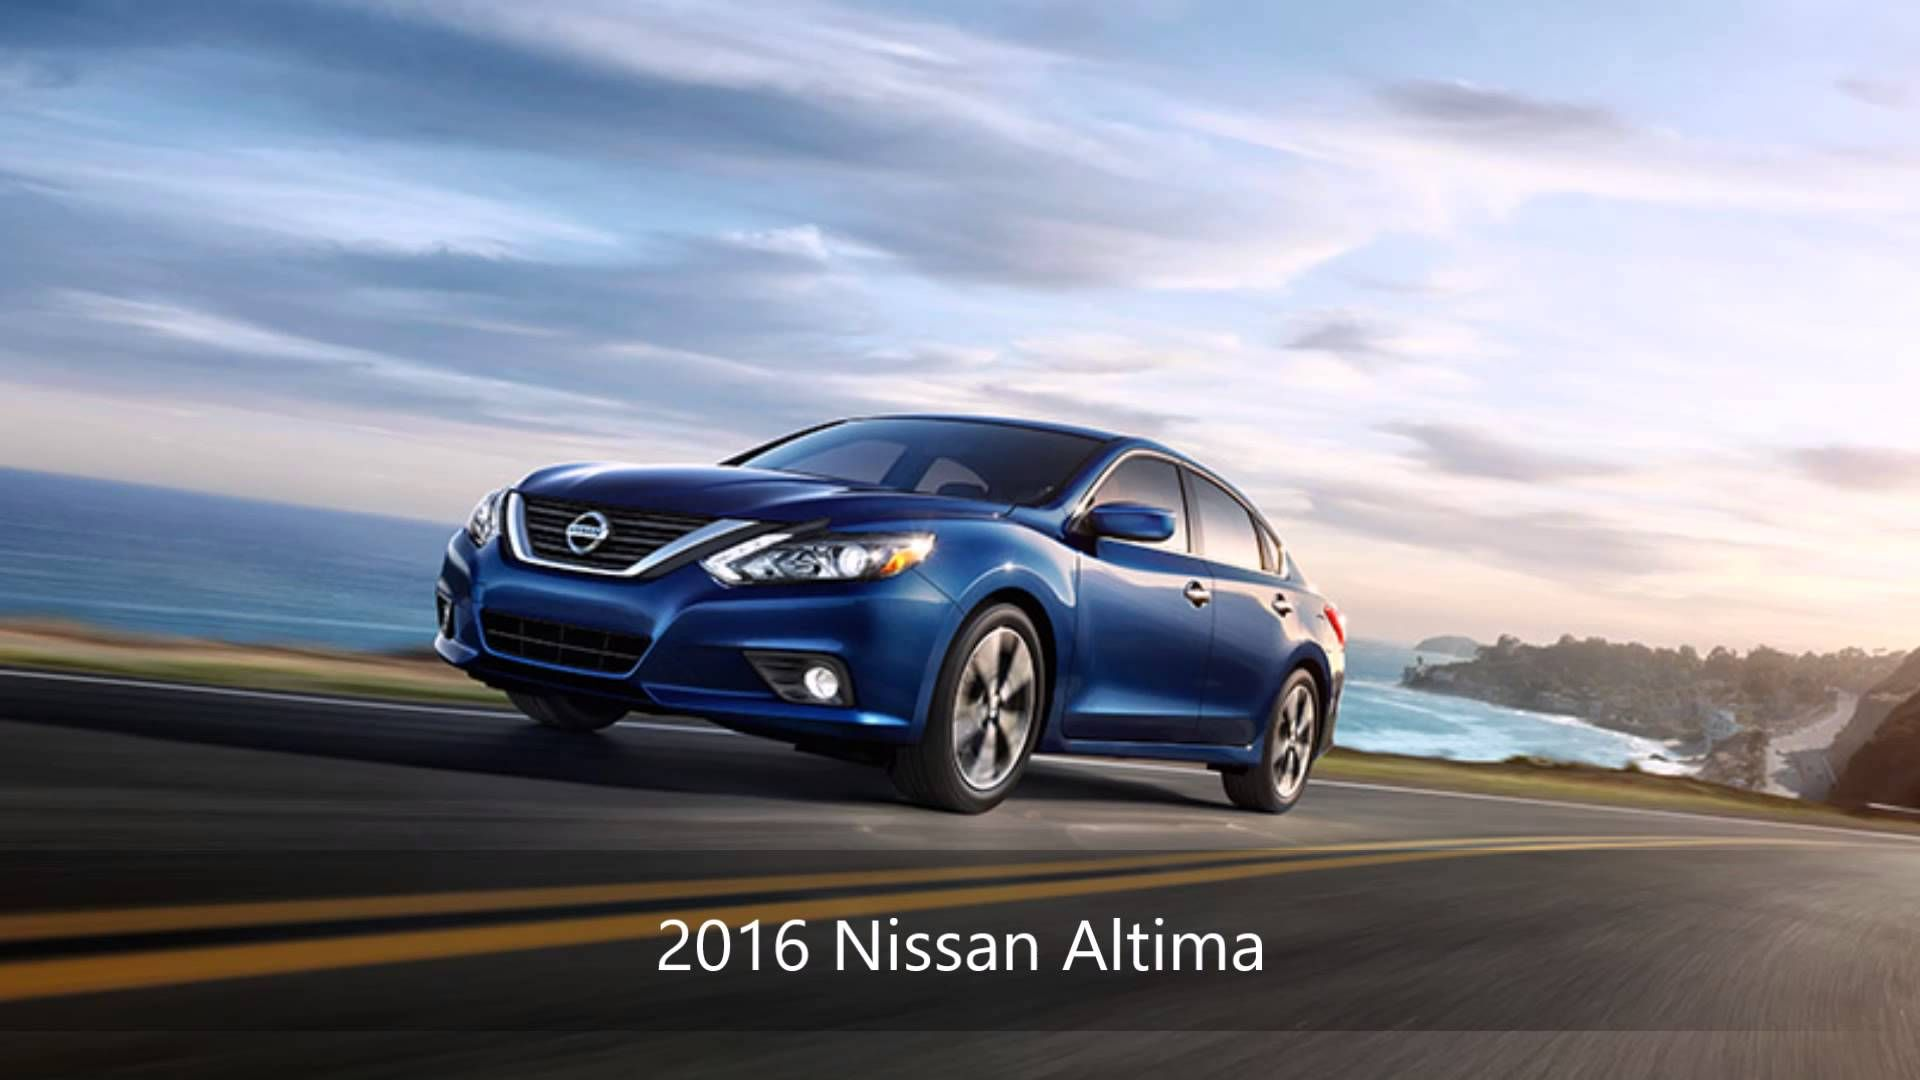 2016 nissan altima from sutherlin nissan serving sanford winter park and orlando fl